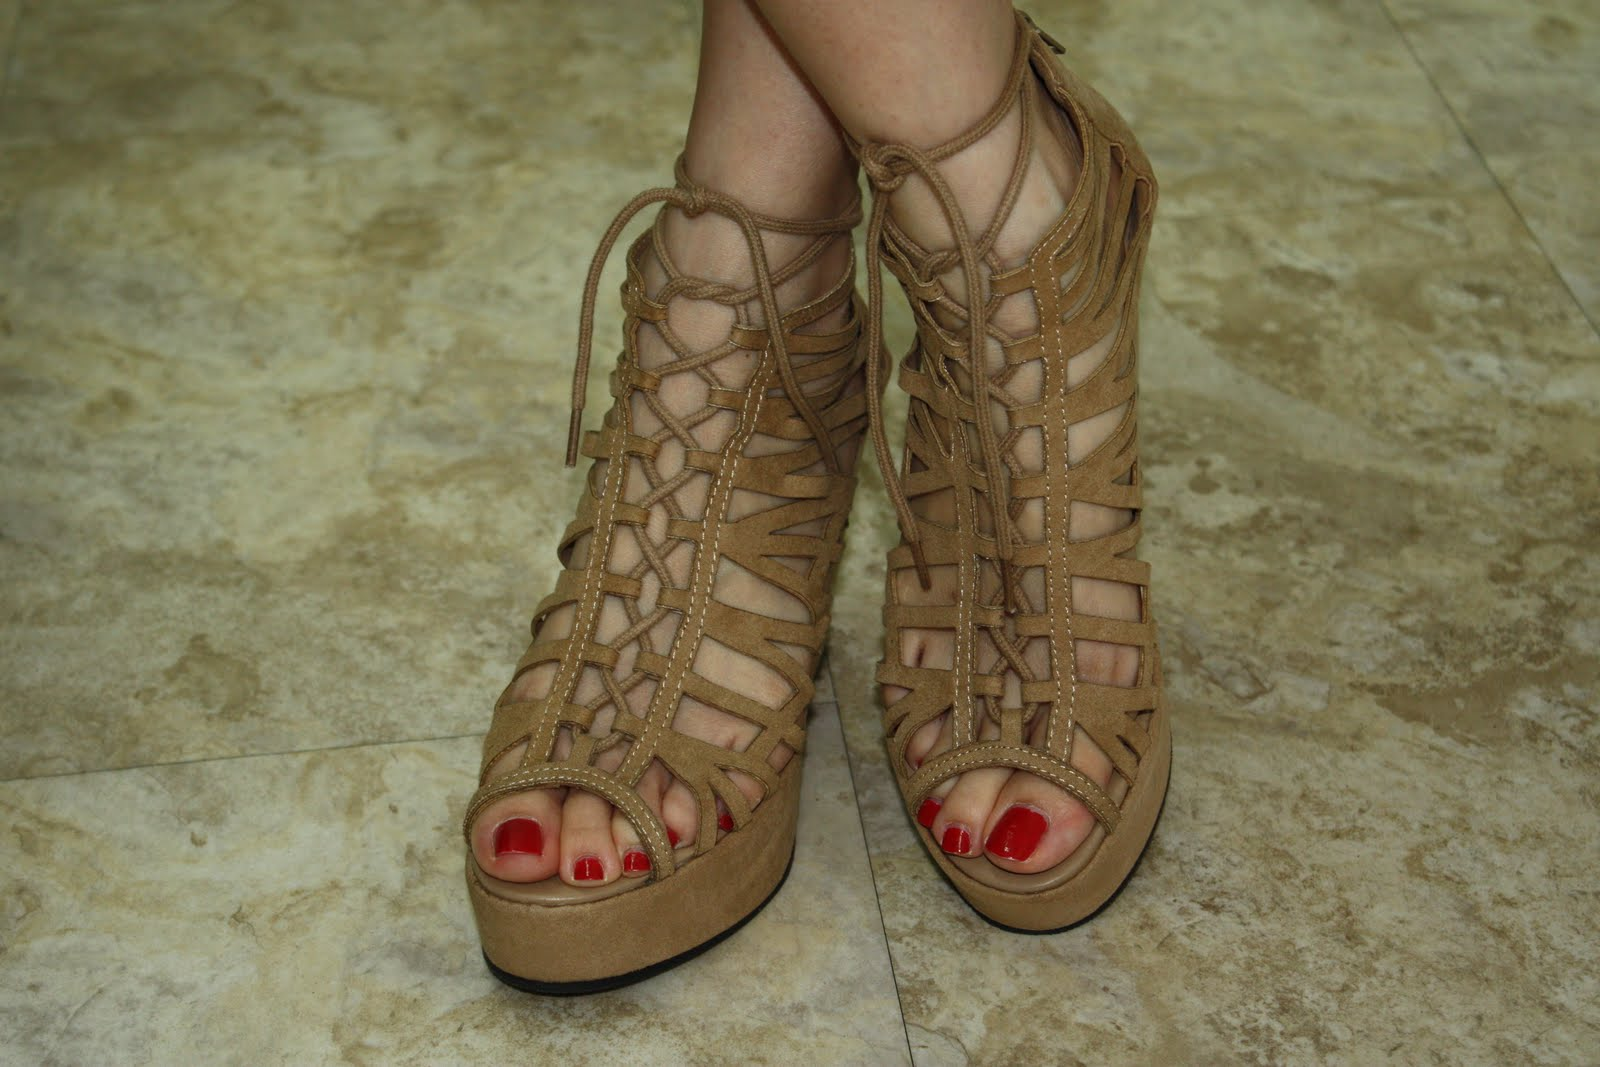 i Got These Wedges From H&m a